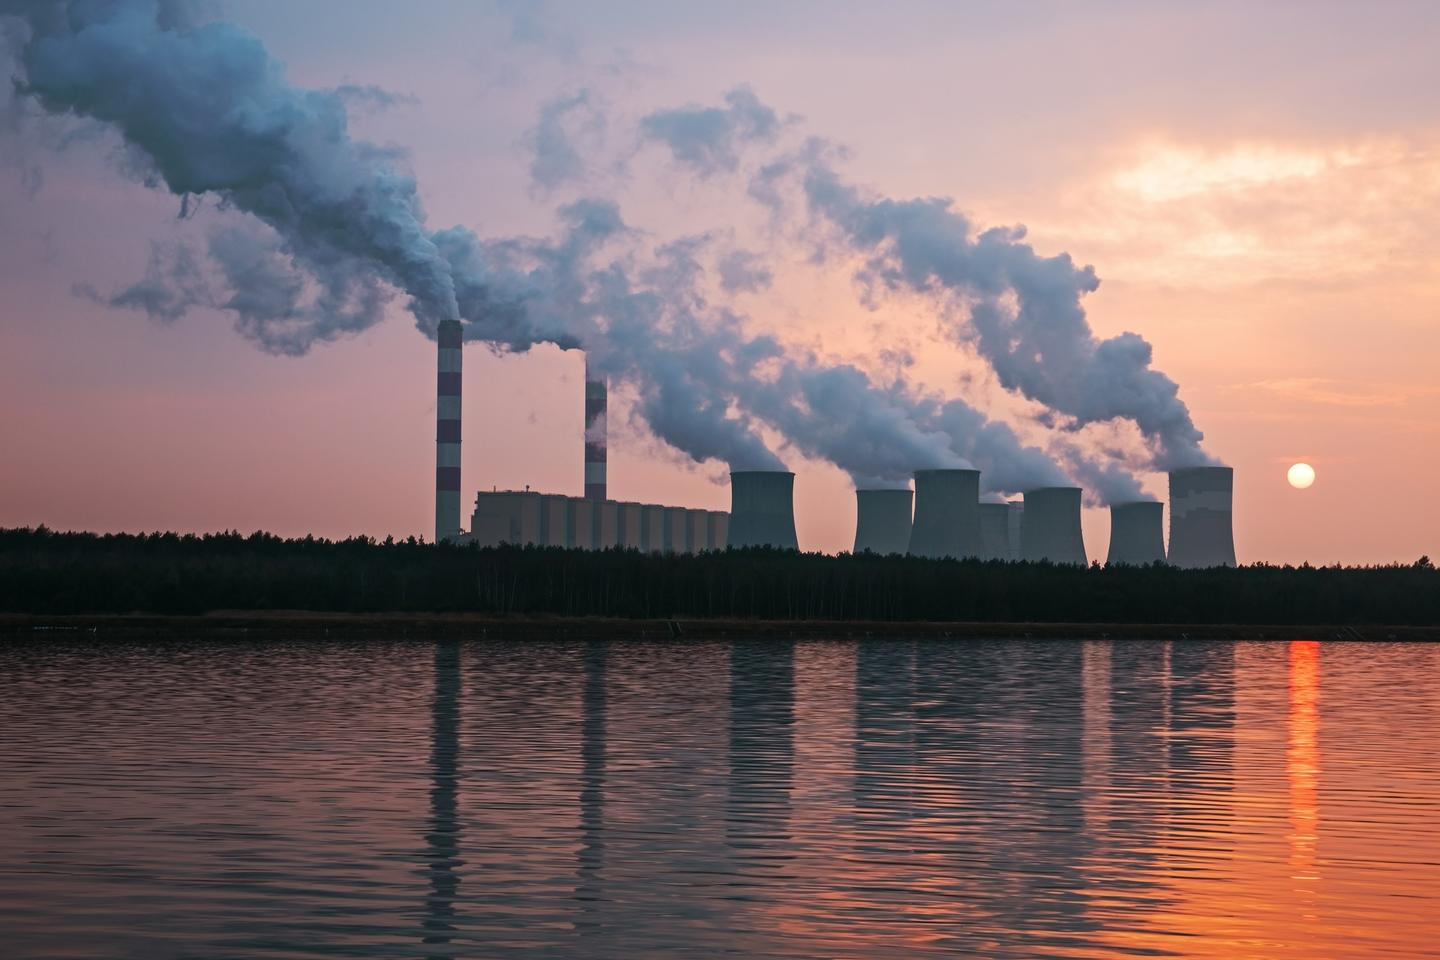 A new report has painted a bleak picture for the health of the planet despite the impact of COVID-19